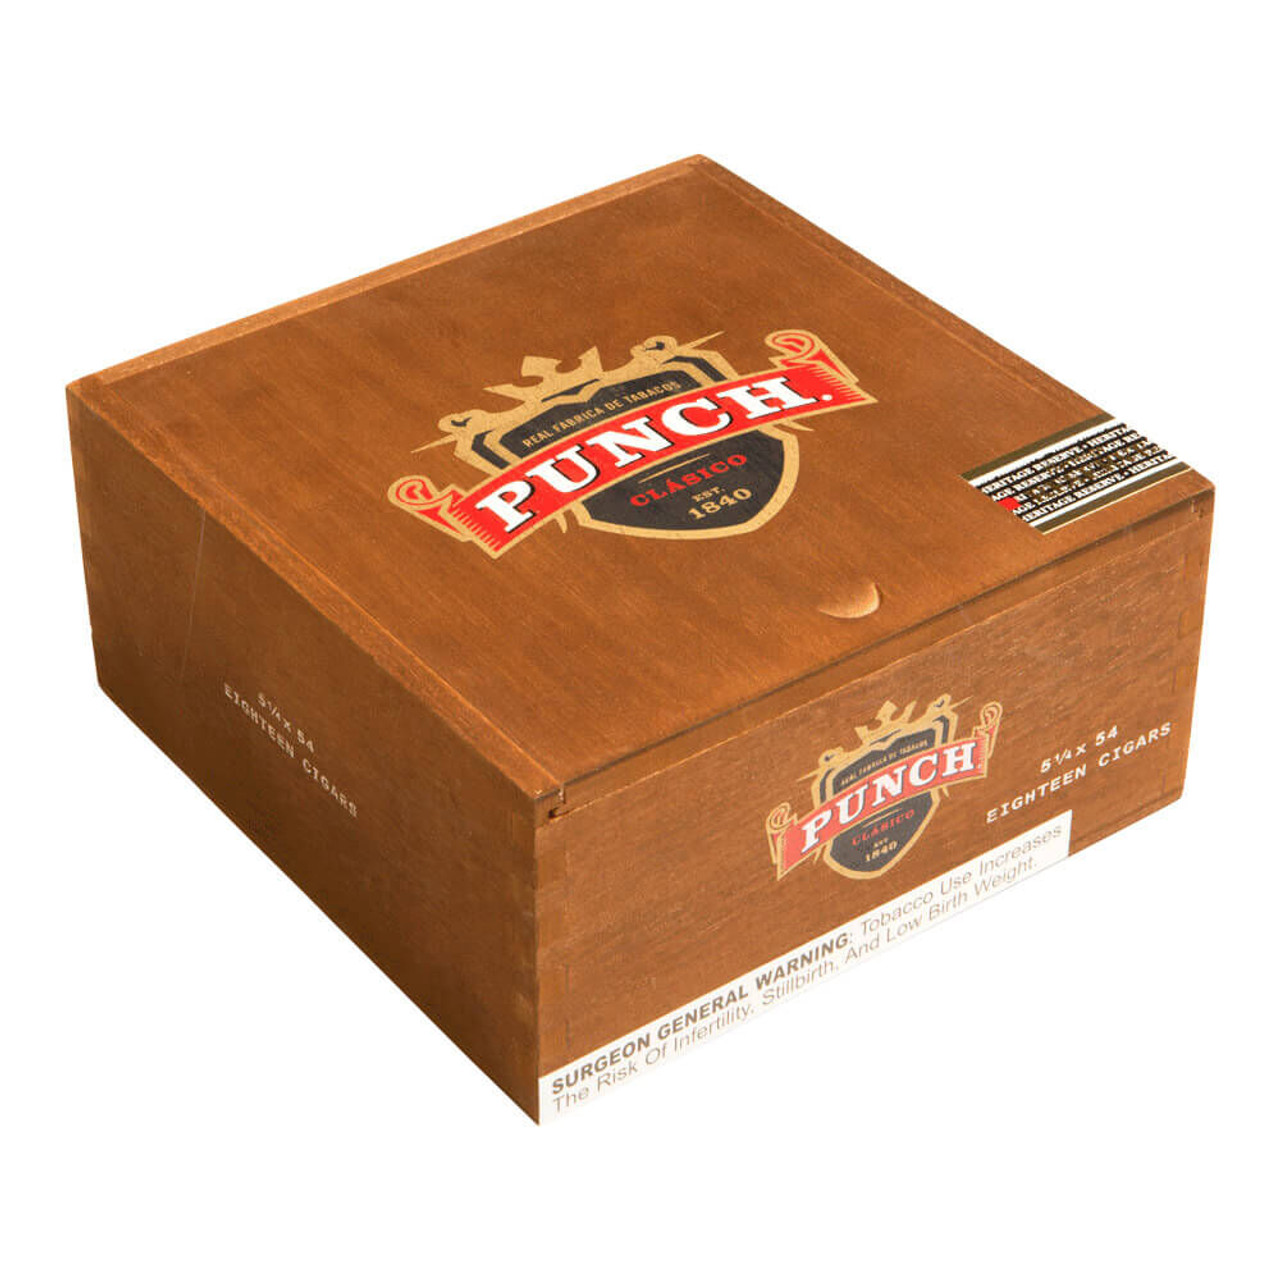 Punch Heritage Reserve Robusto Cigars - 5.25 x 54 (Box of 18)